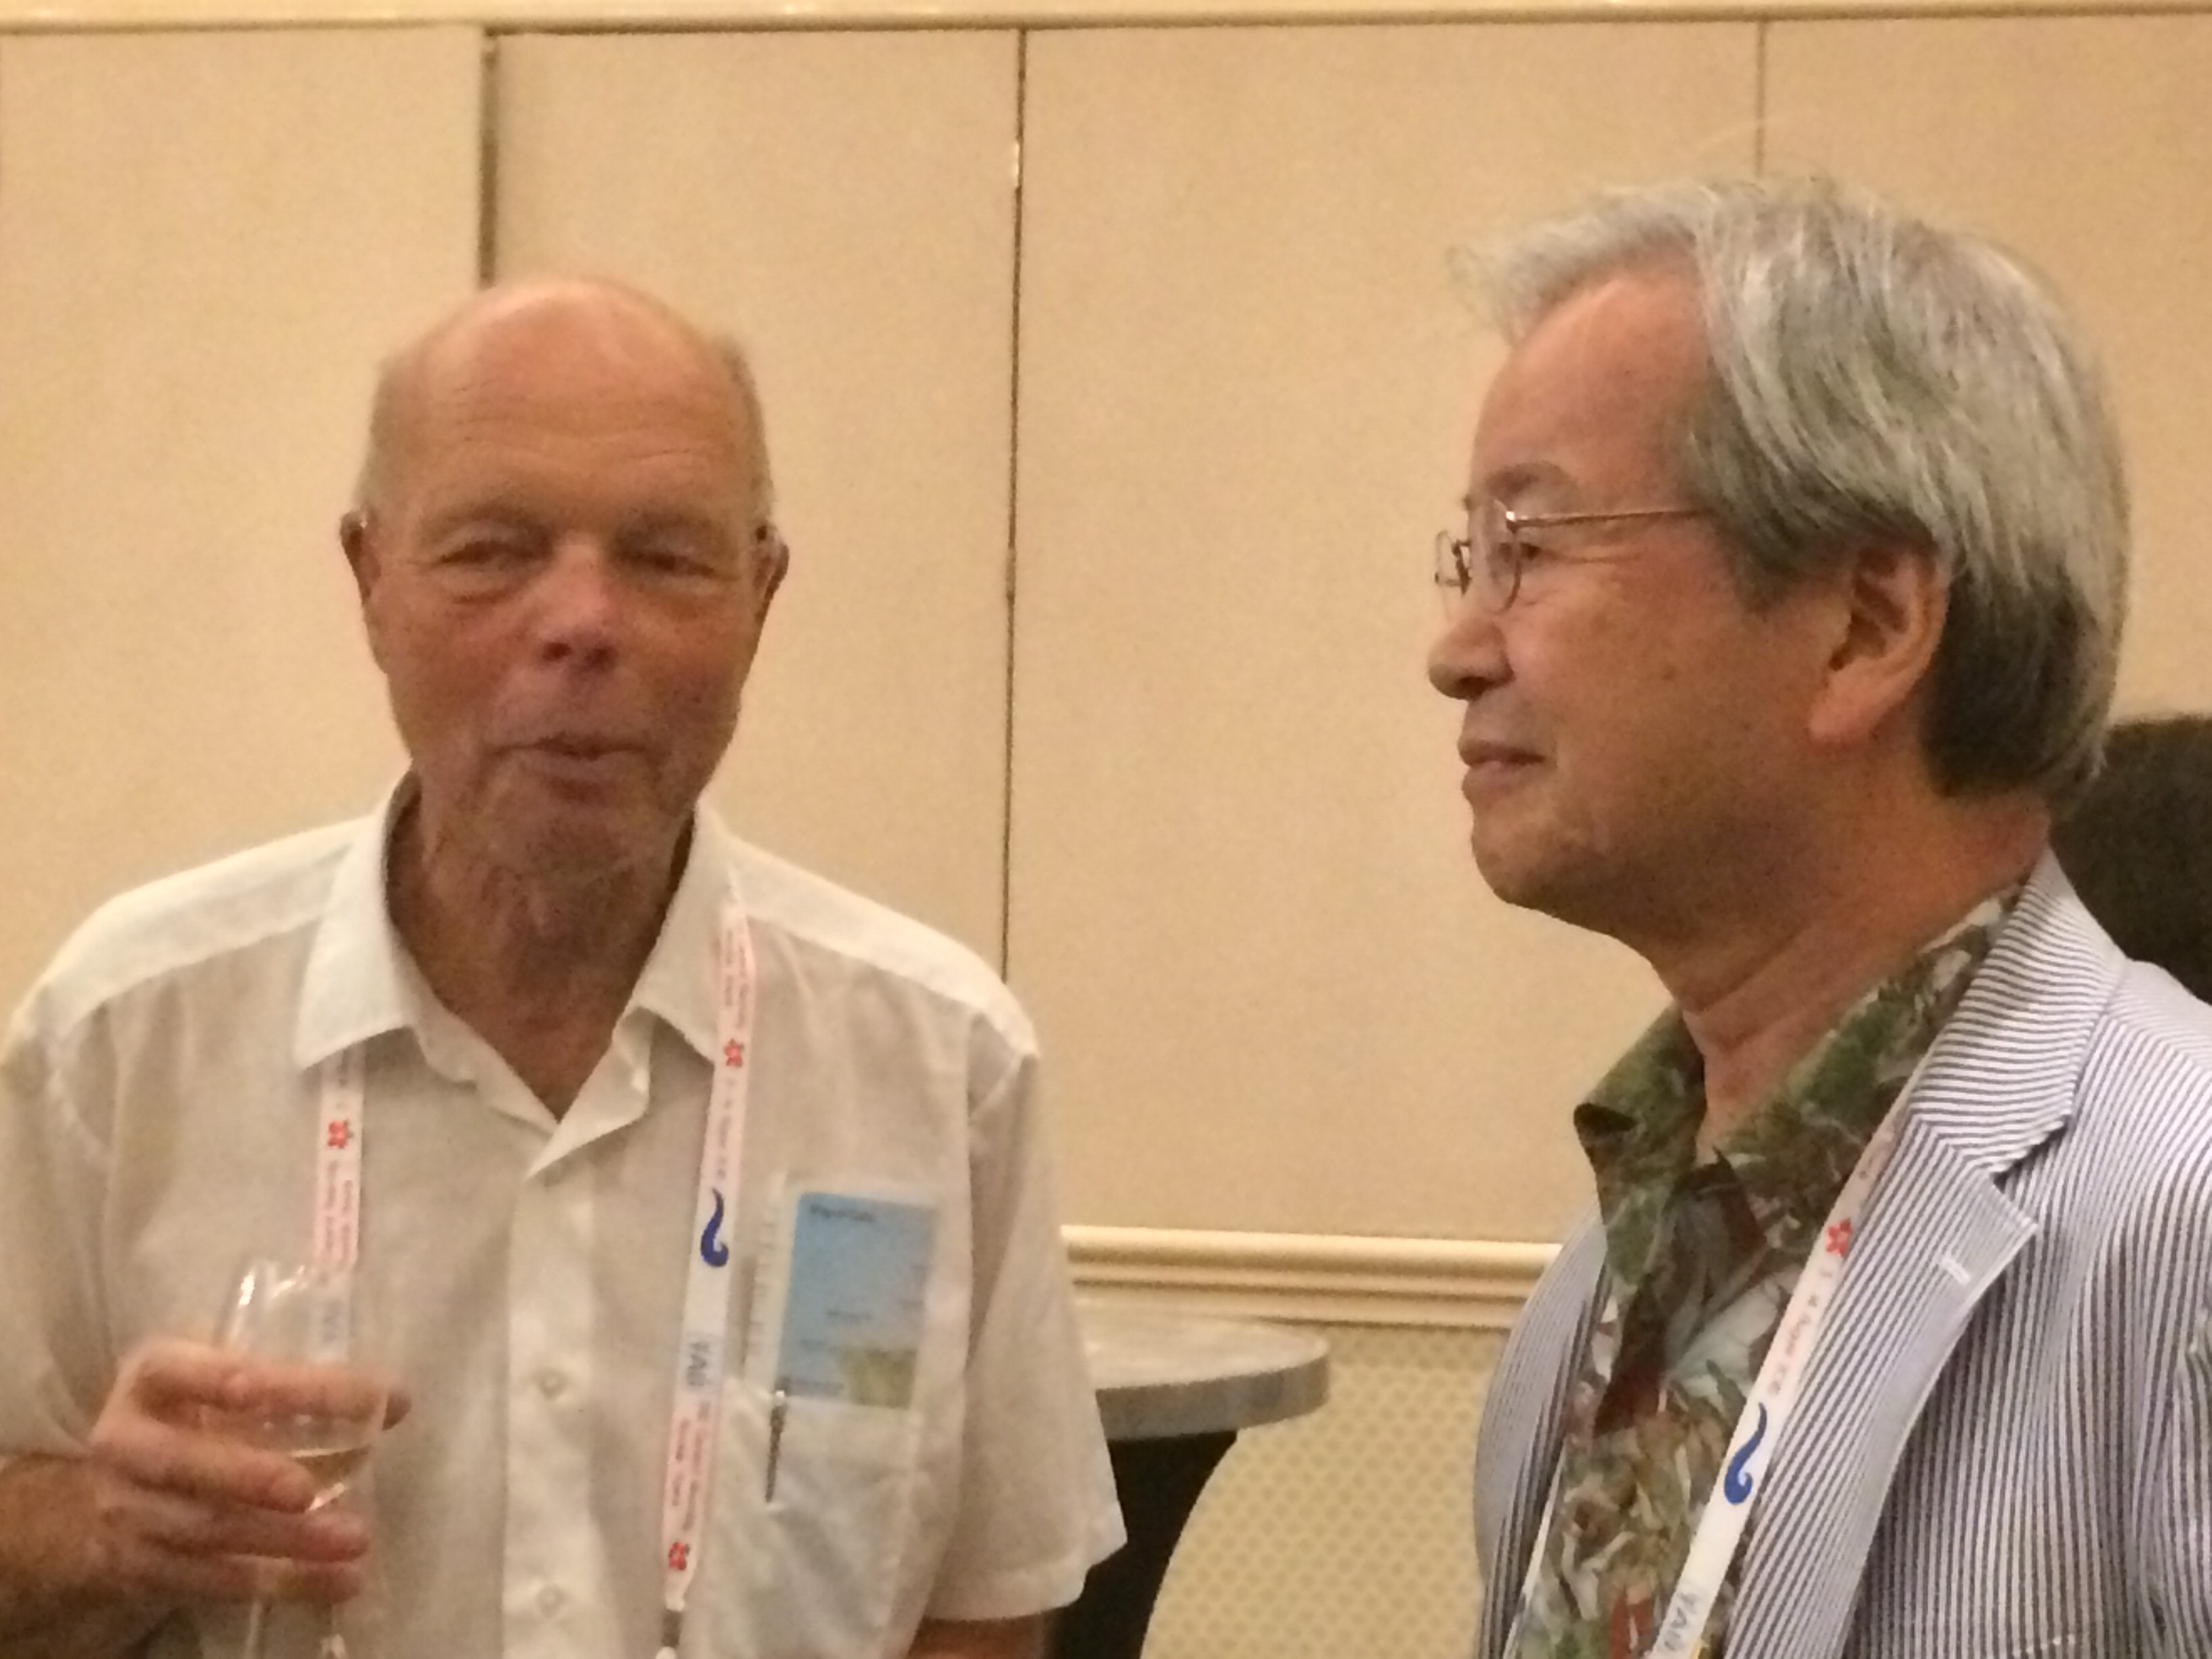 Johannes Andersen and Nario Kaifu at the U.S. Reception